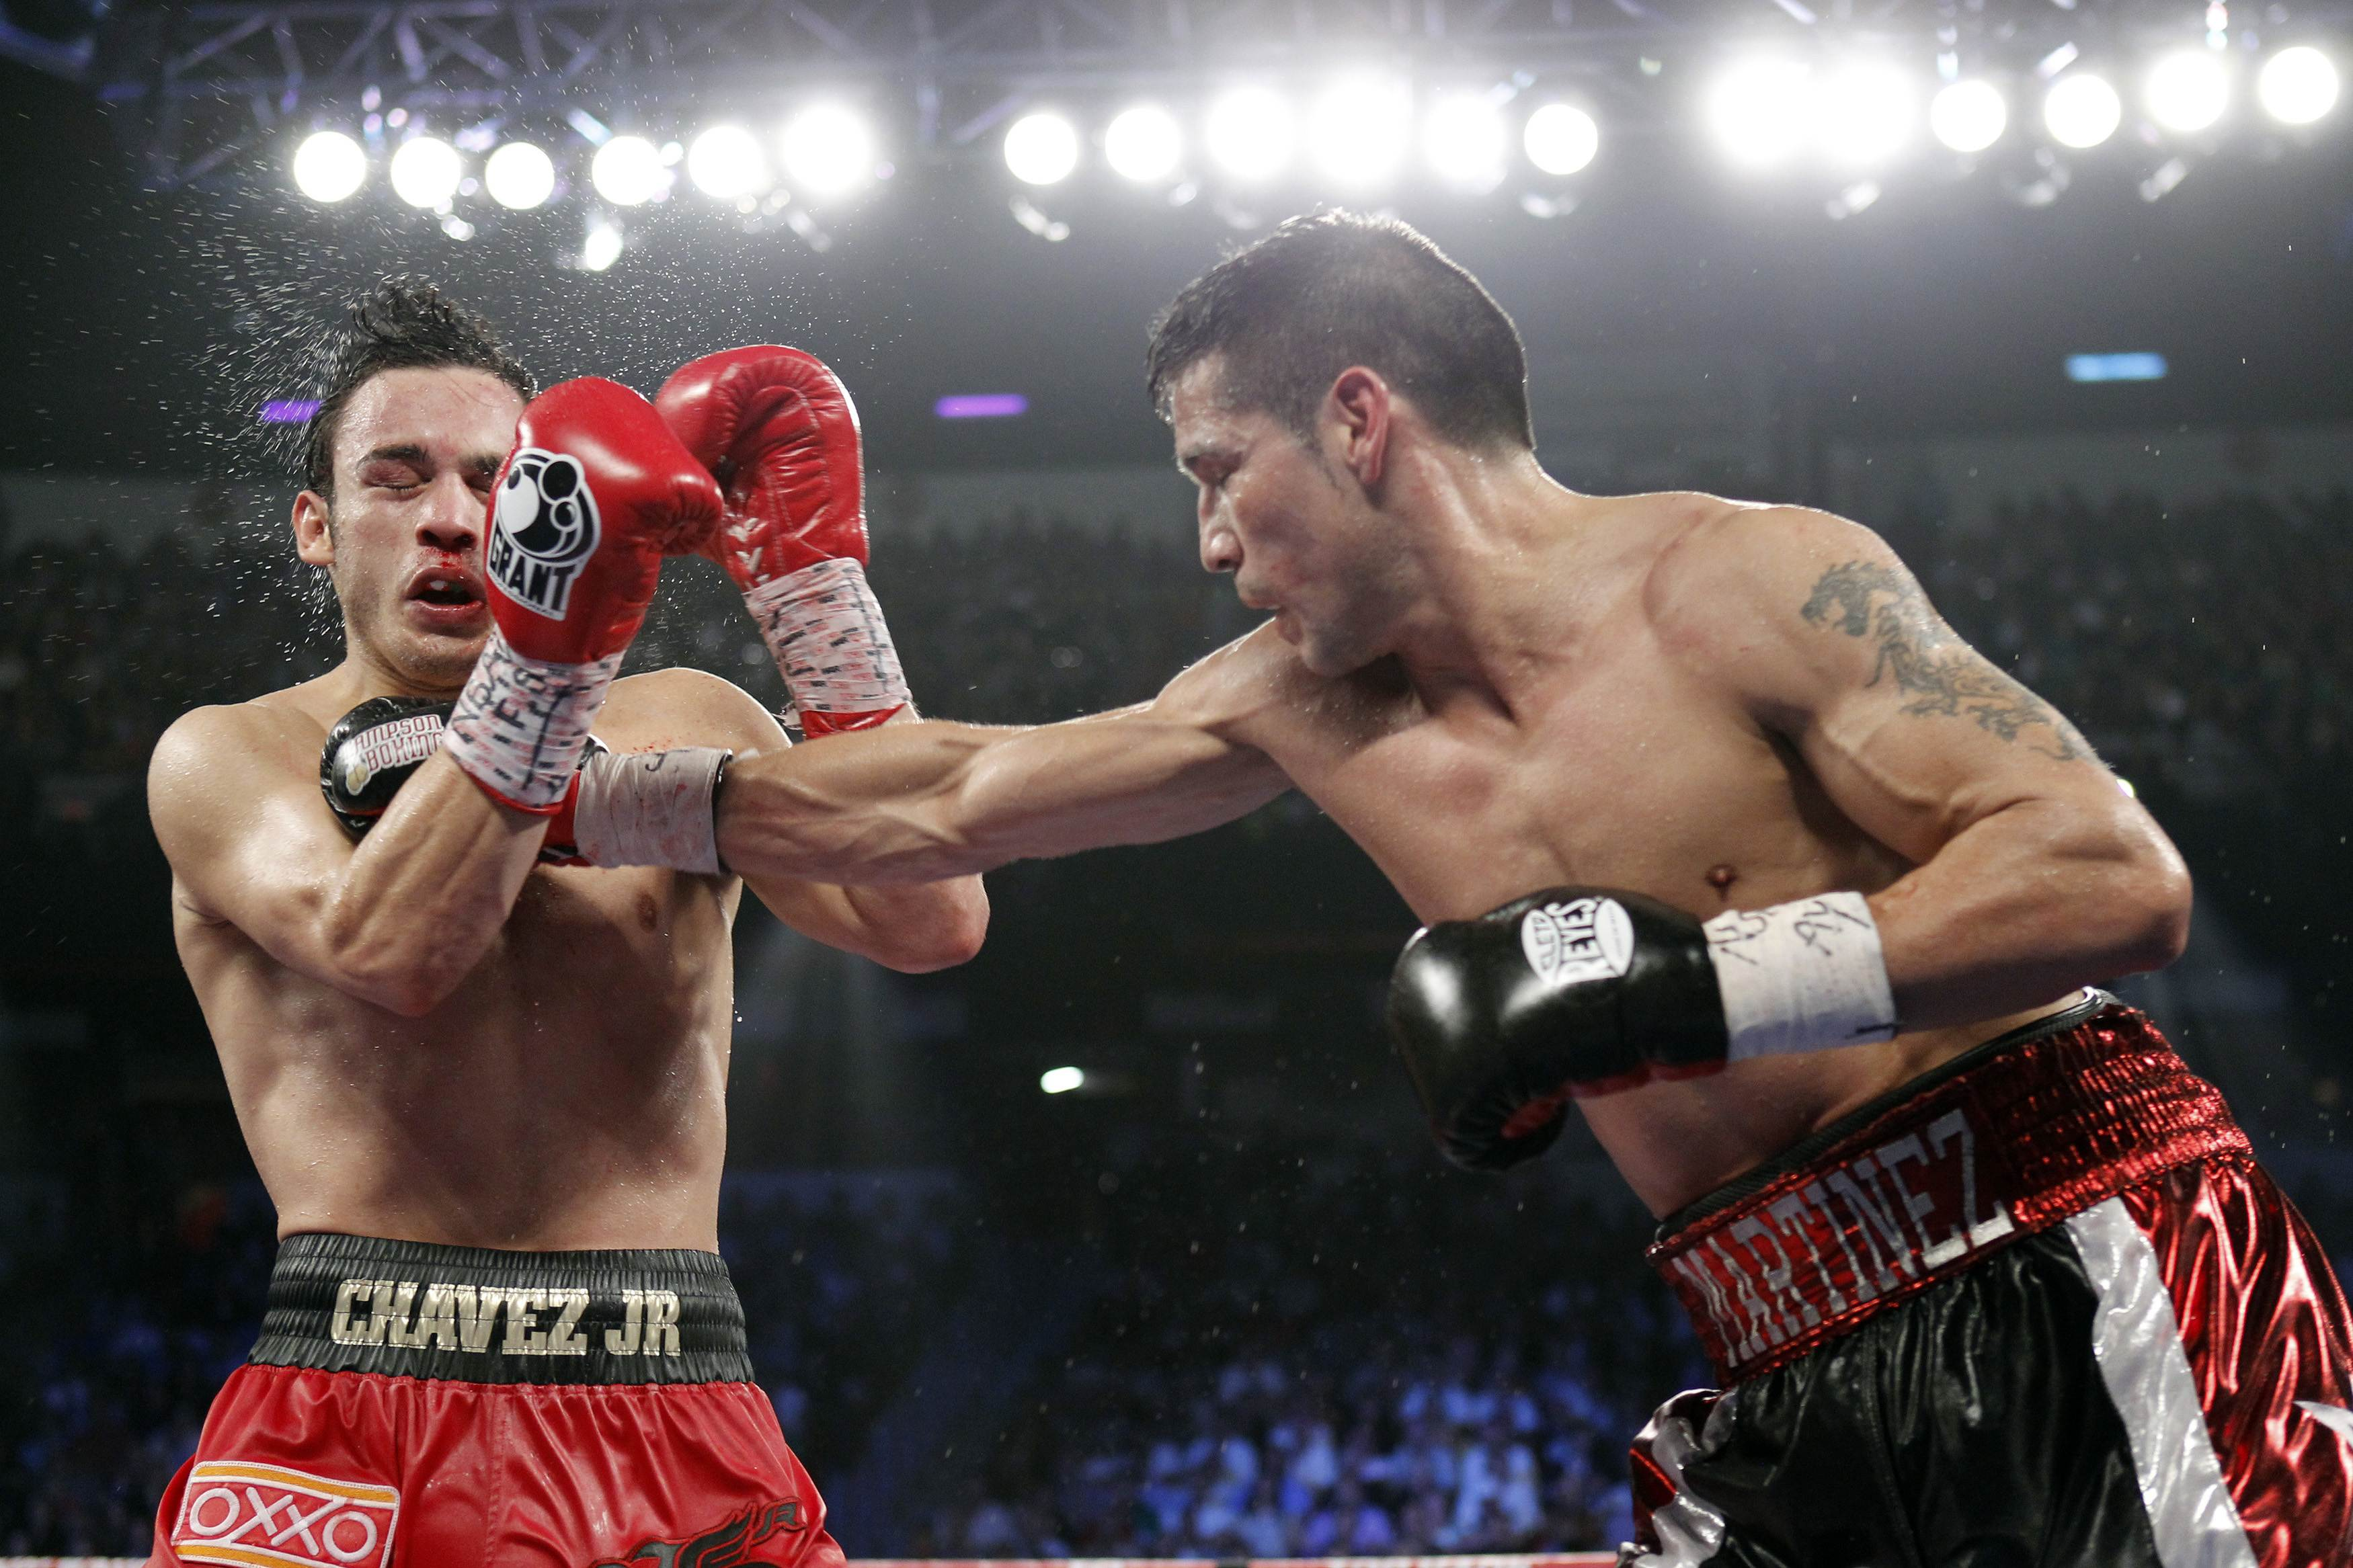 Julio Cesar Chavez Jr. takes a punch from Sergio Martinez during their title fight. REUTERS/Steve Marcus